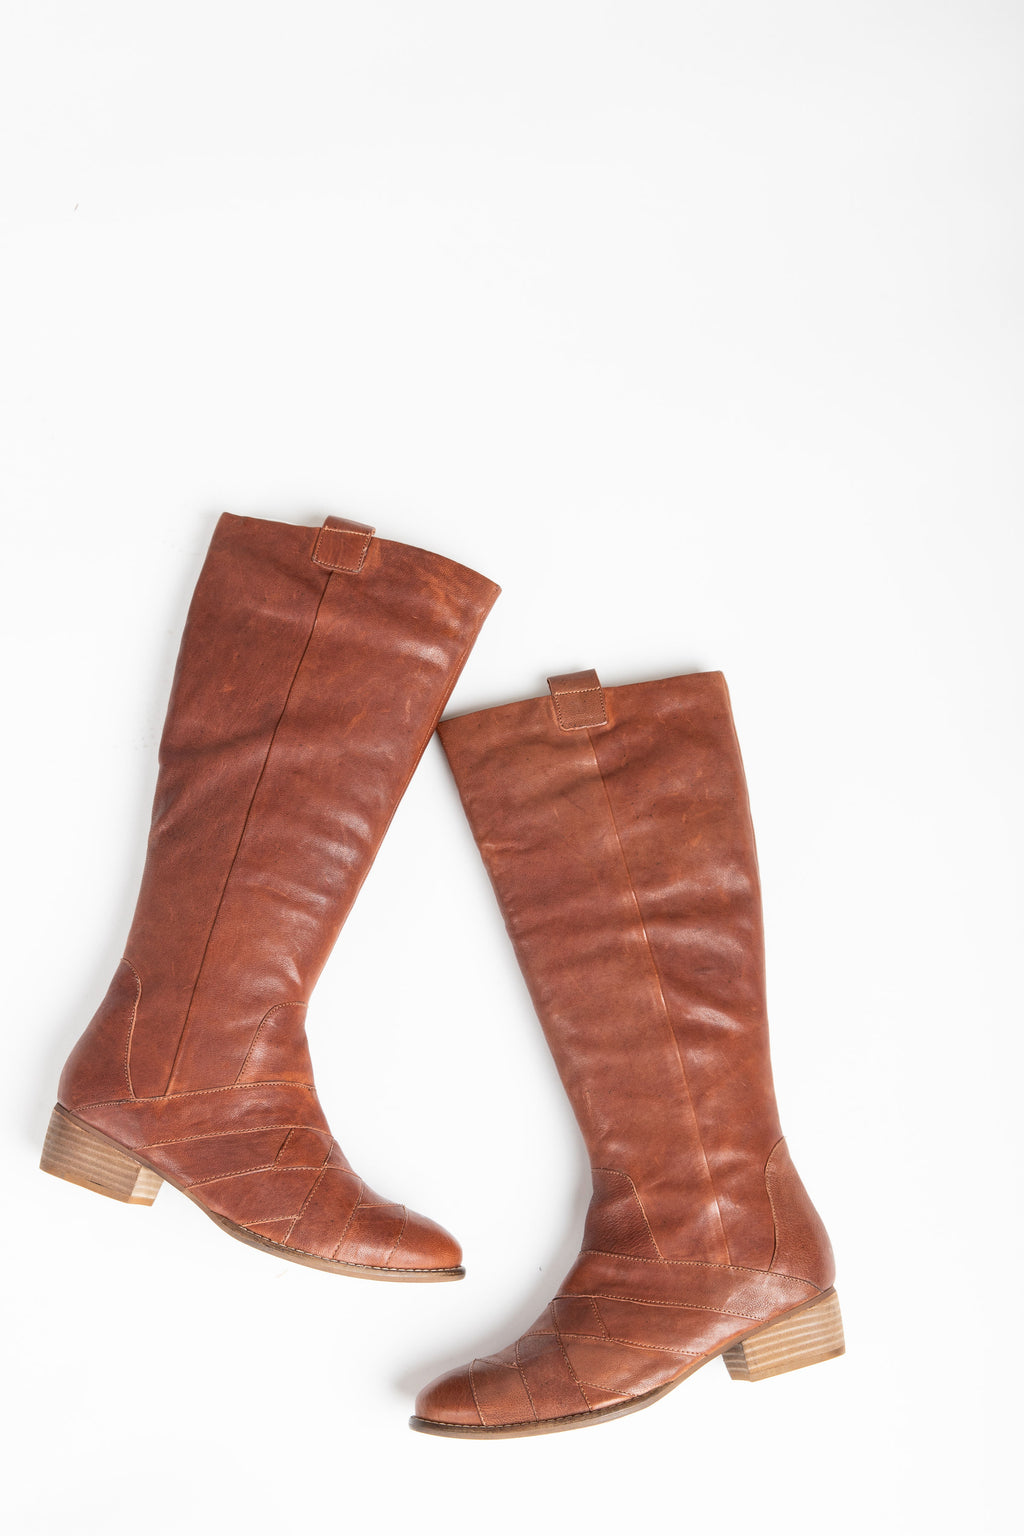 Seychelles: Rally Riding Boot in Cognac